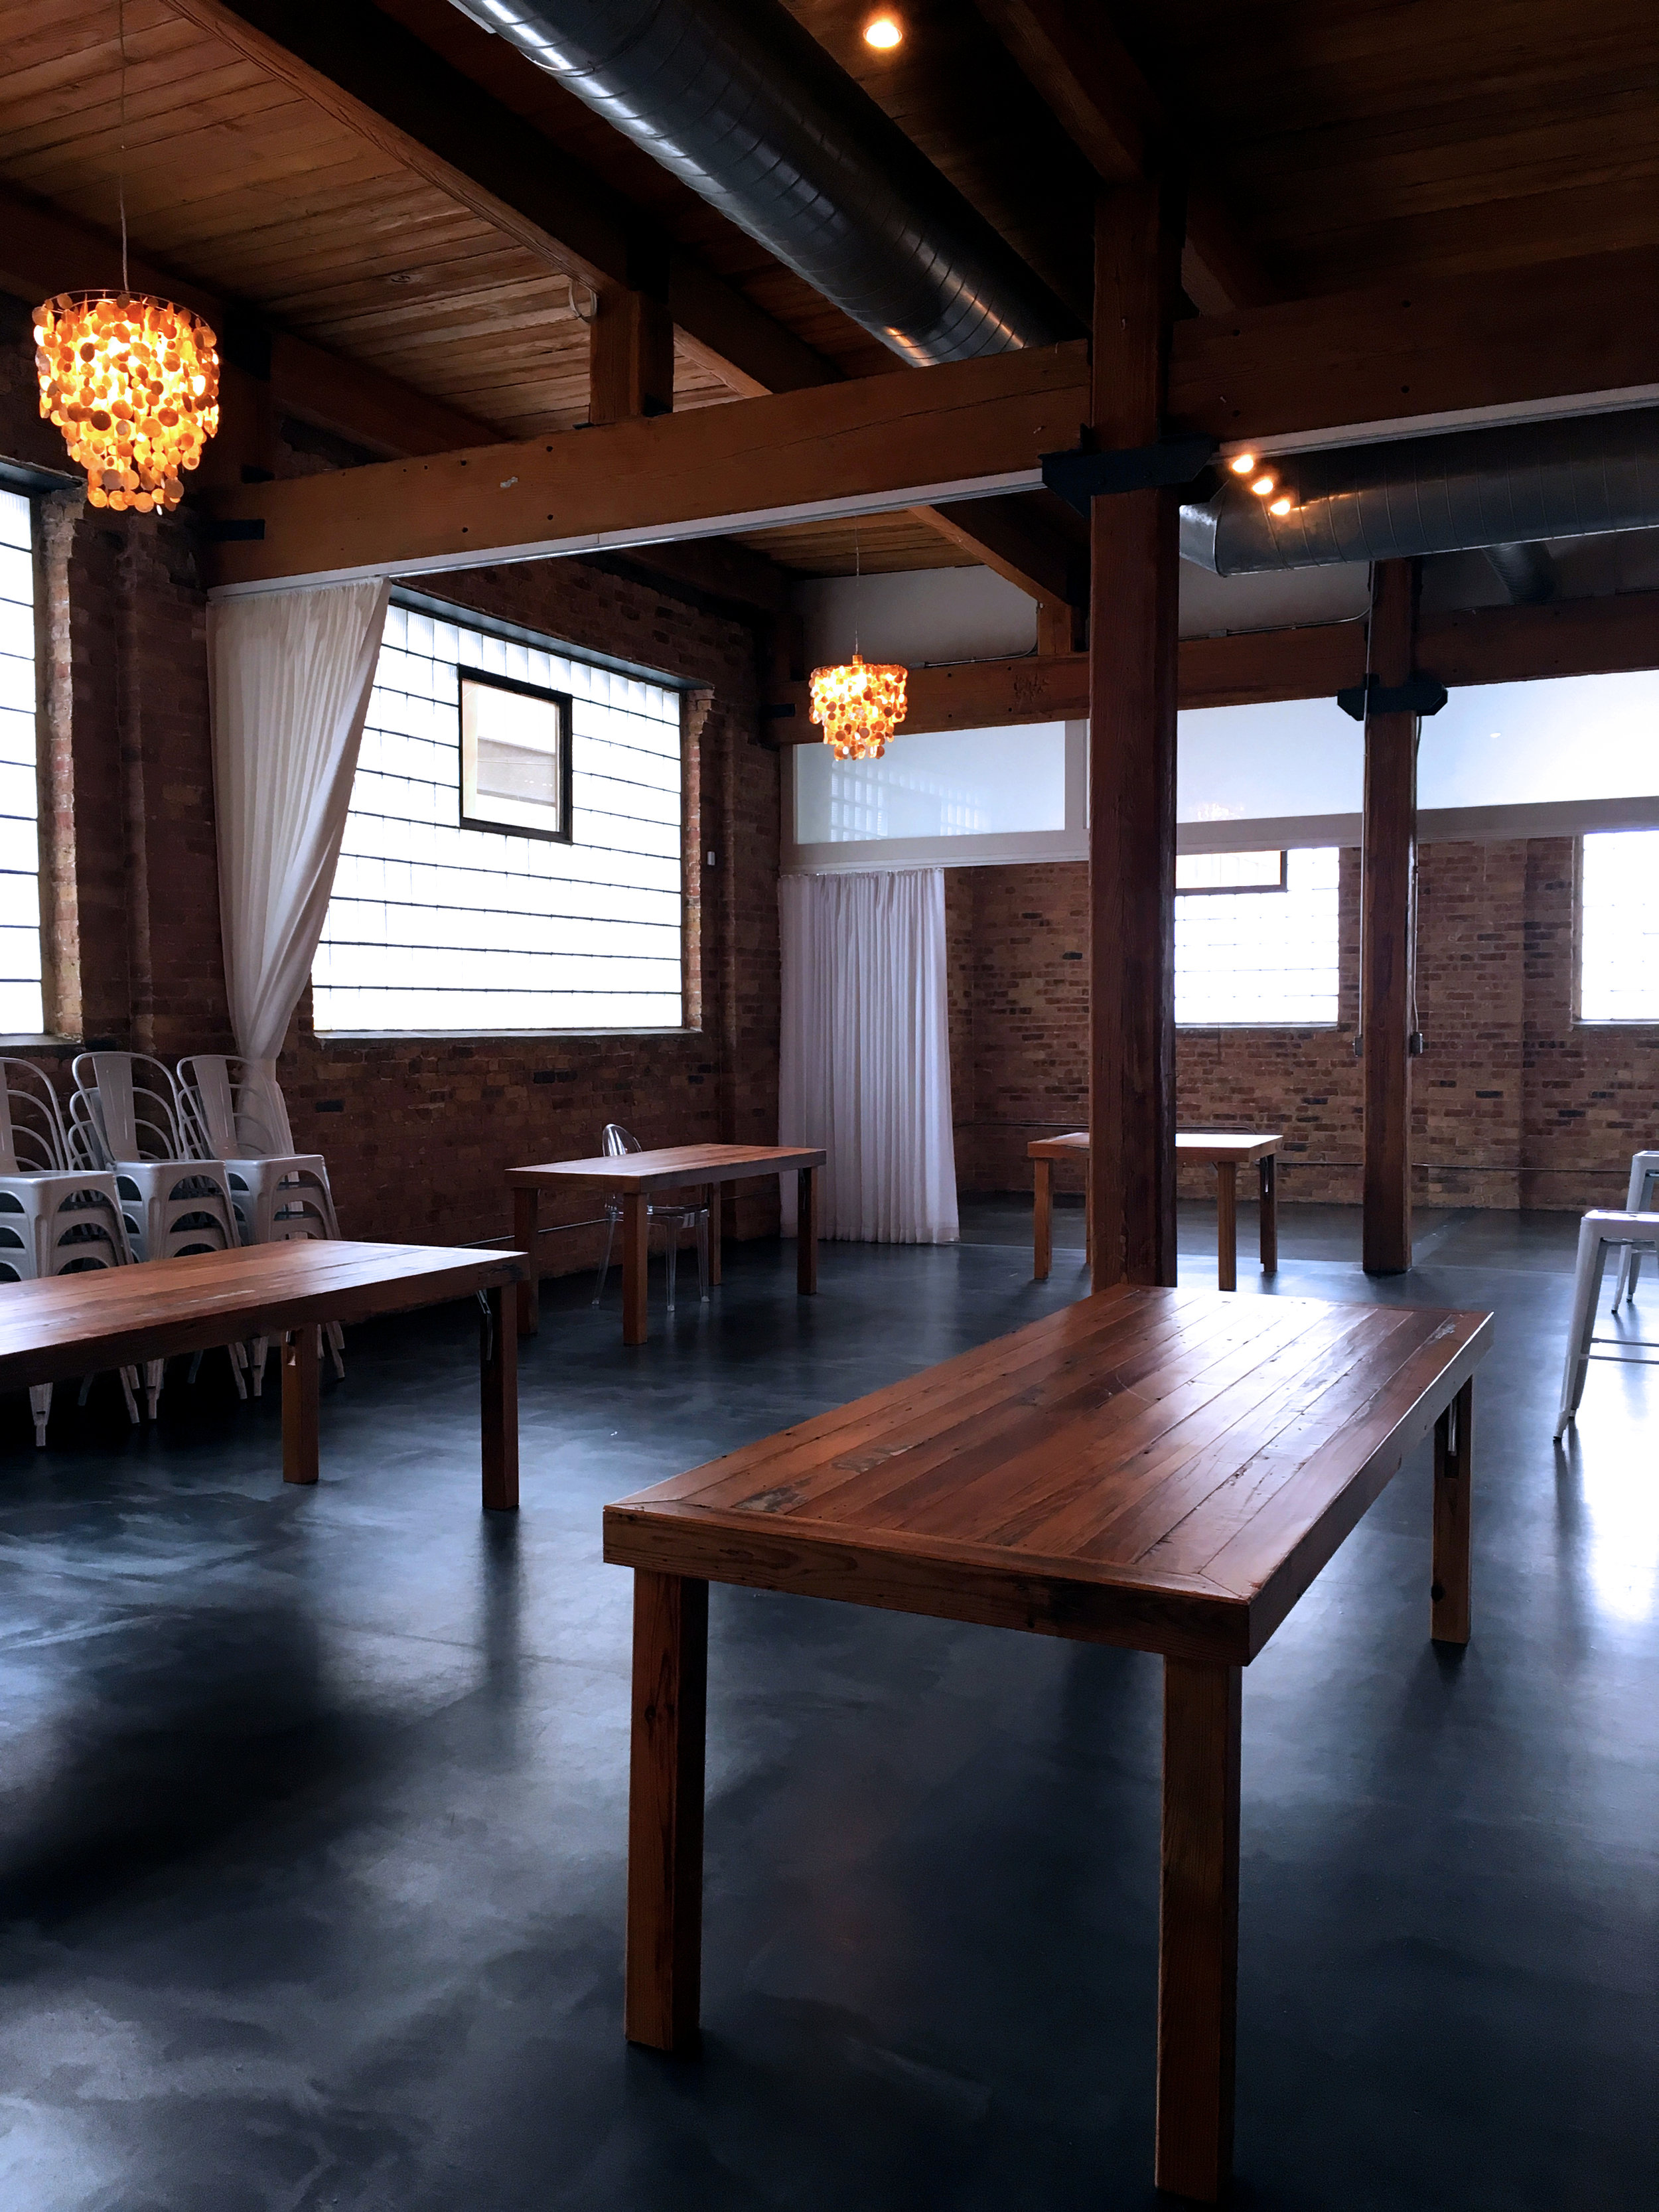 Chicago Event Venue Space - Brique